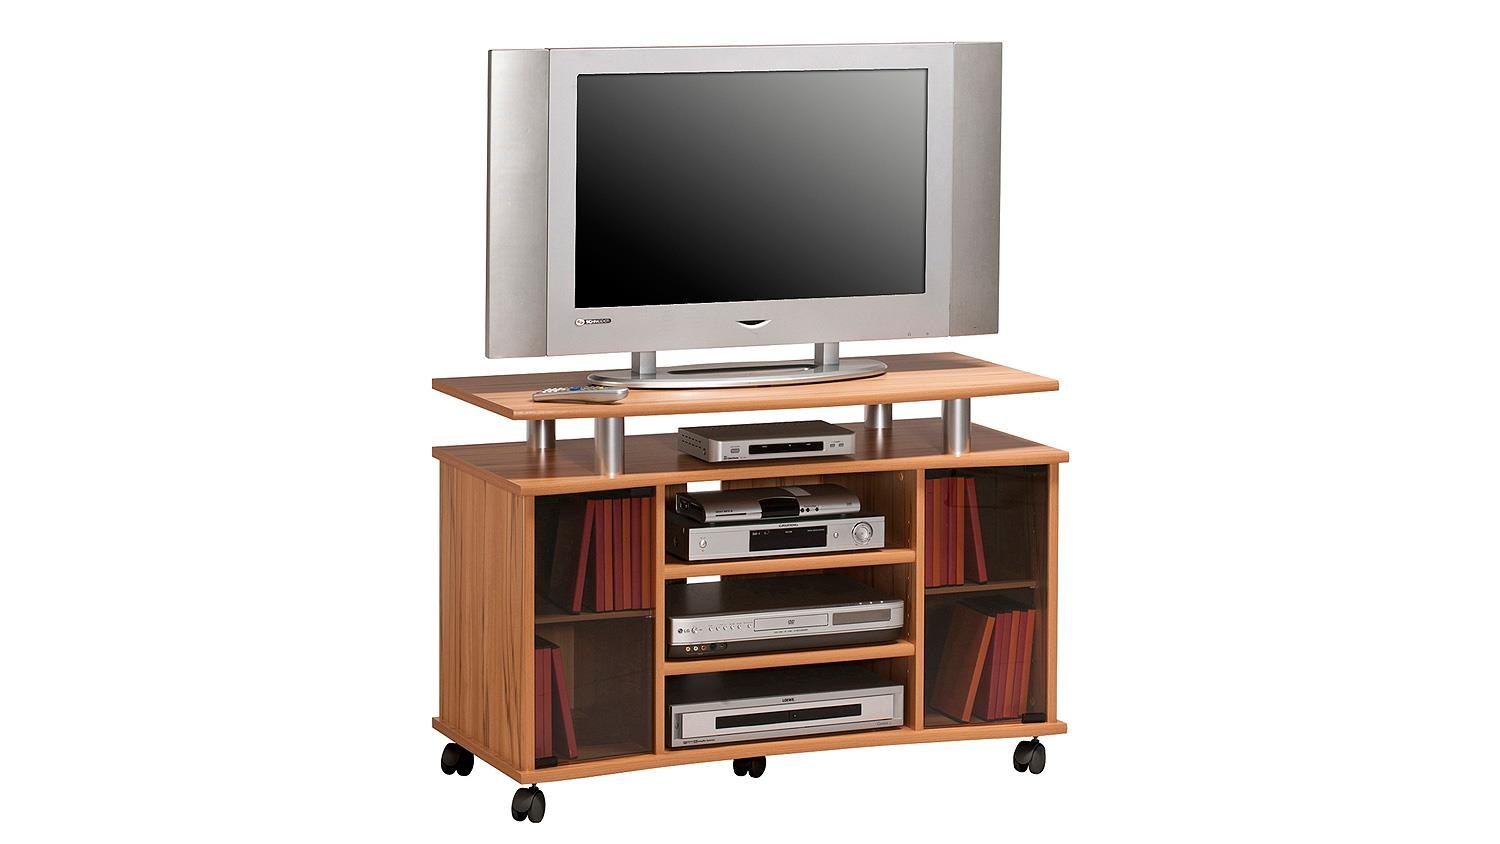 tv rack maja 7362 tv board in kernbuche mit rauchglas. Black Bedroom Furniture Sets. Home Design Ideas